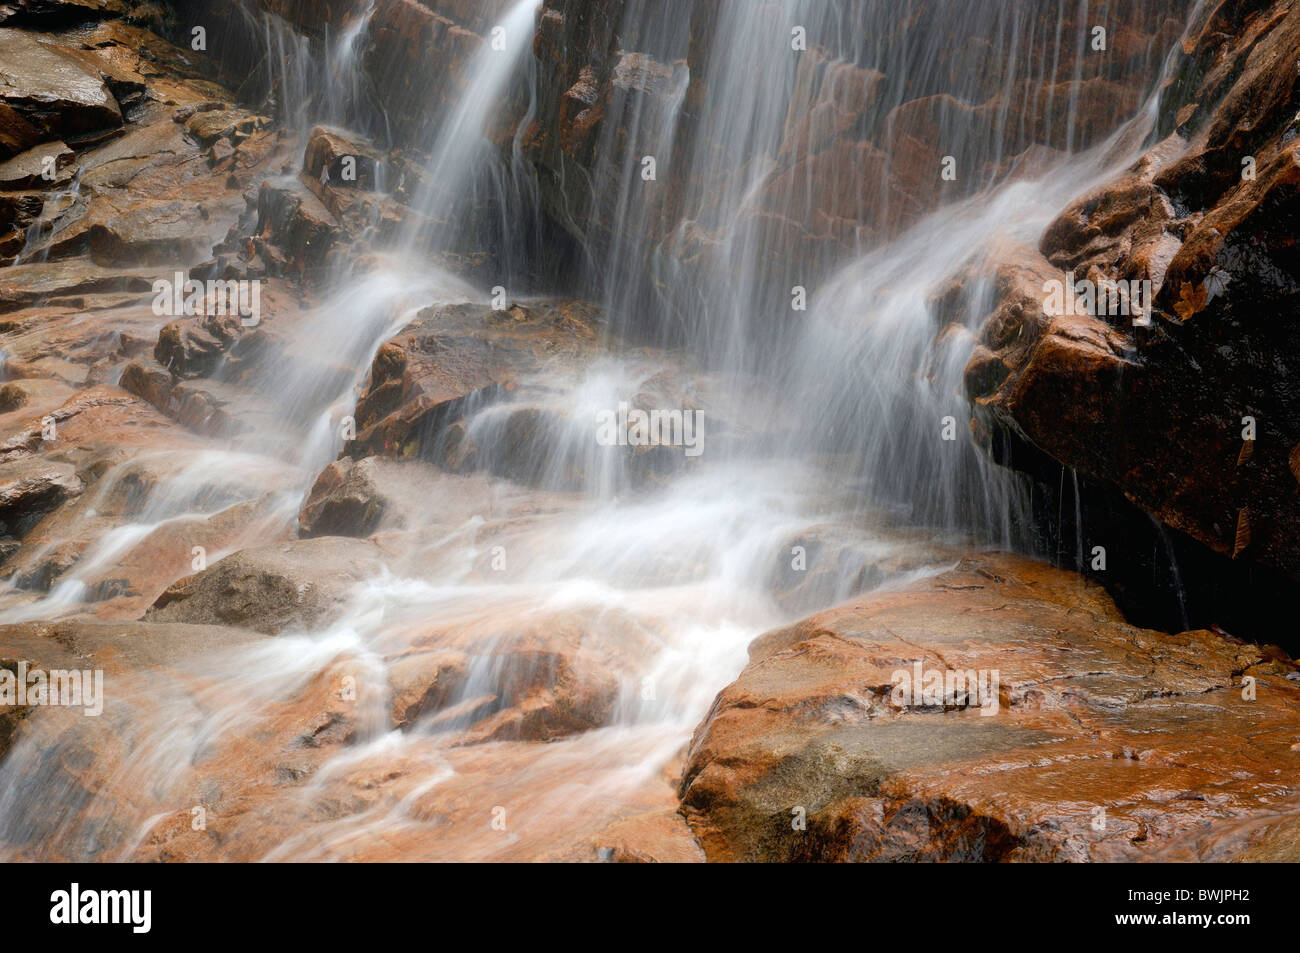 waterfall detail water rock cliff time exposure Arethusa Falls Crawford Notch State Park Indian summer New H Stock Photo